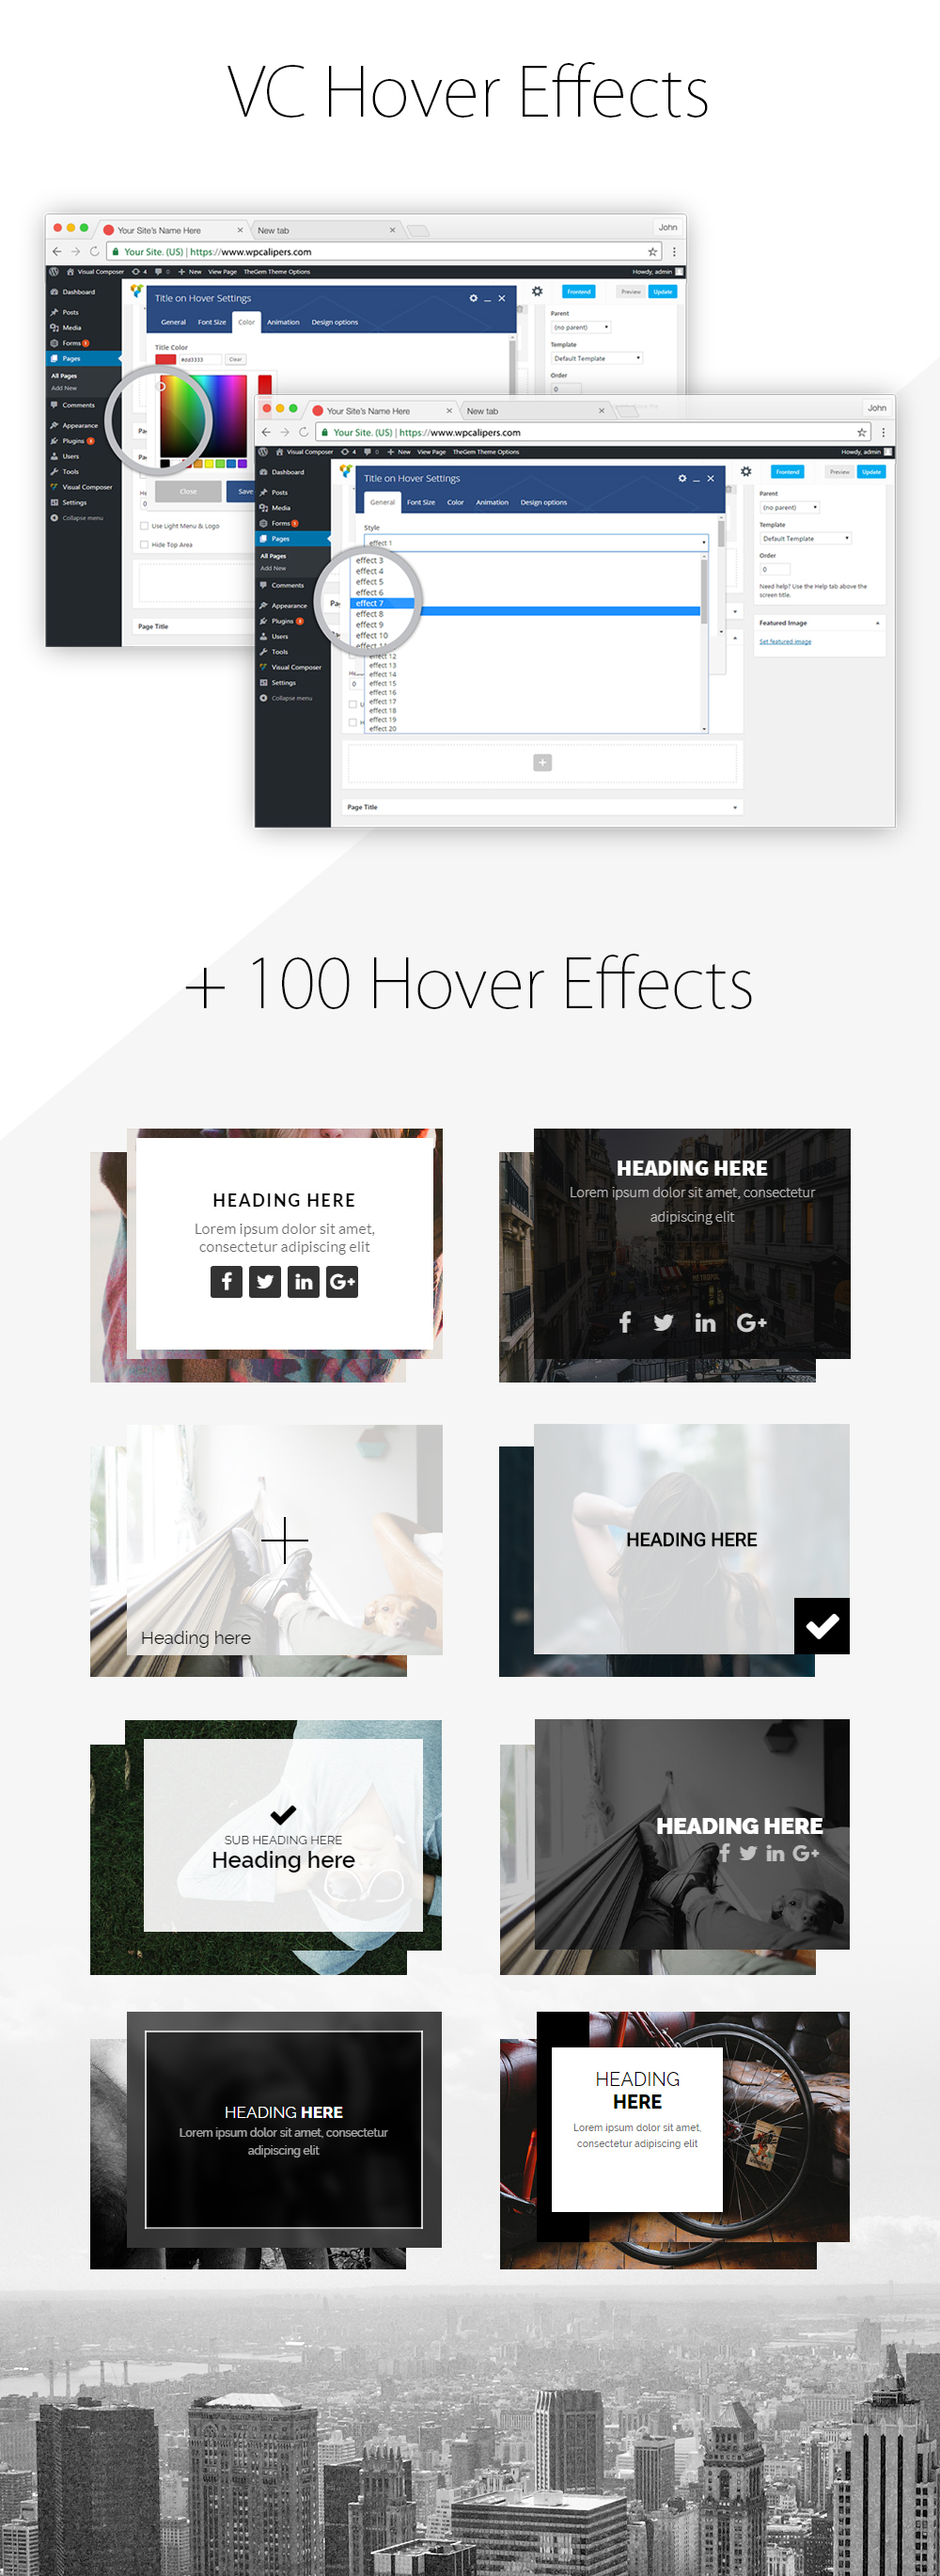 Image Hover Effect Addon For Visual Composer - 1